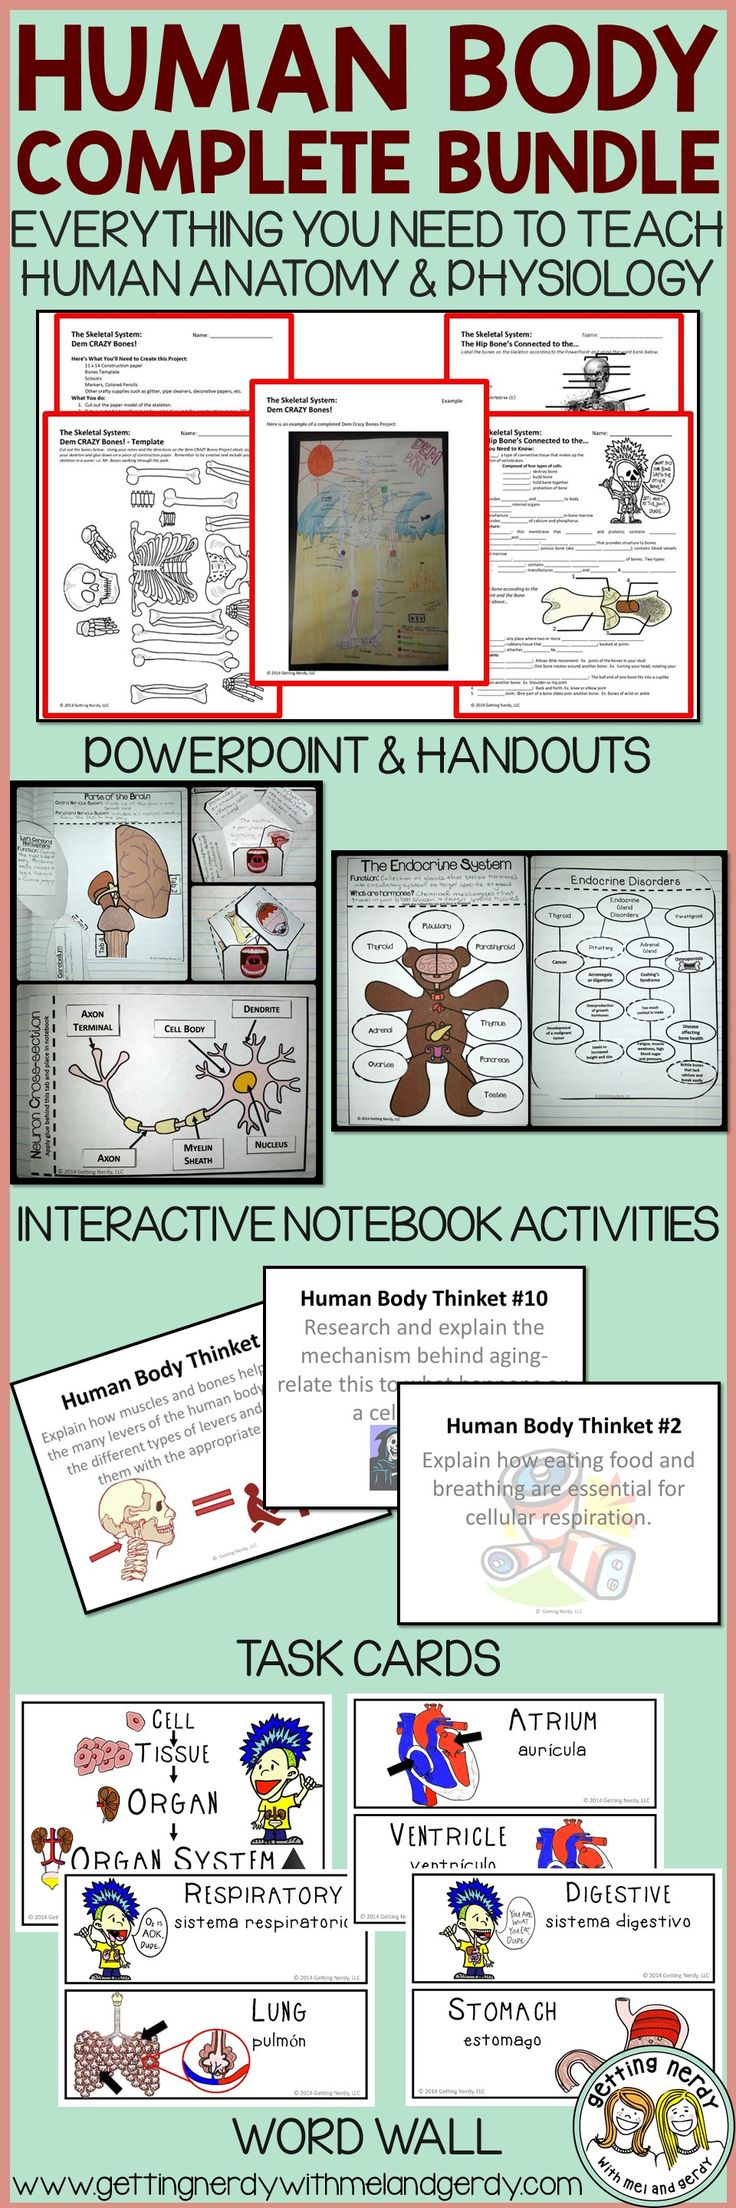 This was such a time saver - everything I needed to teach the human body in my science class was right here.